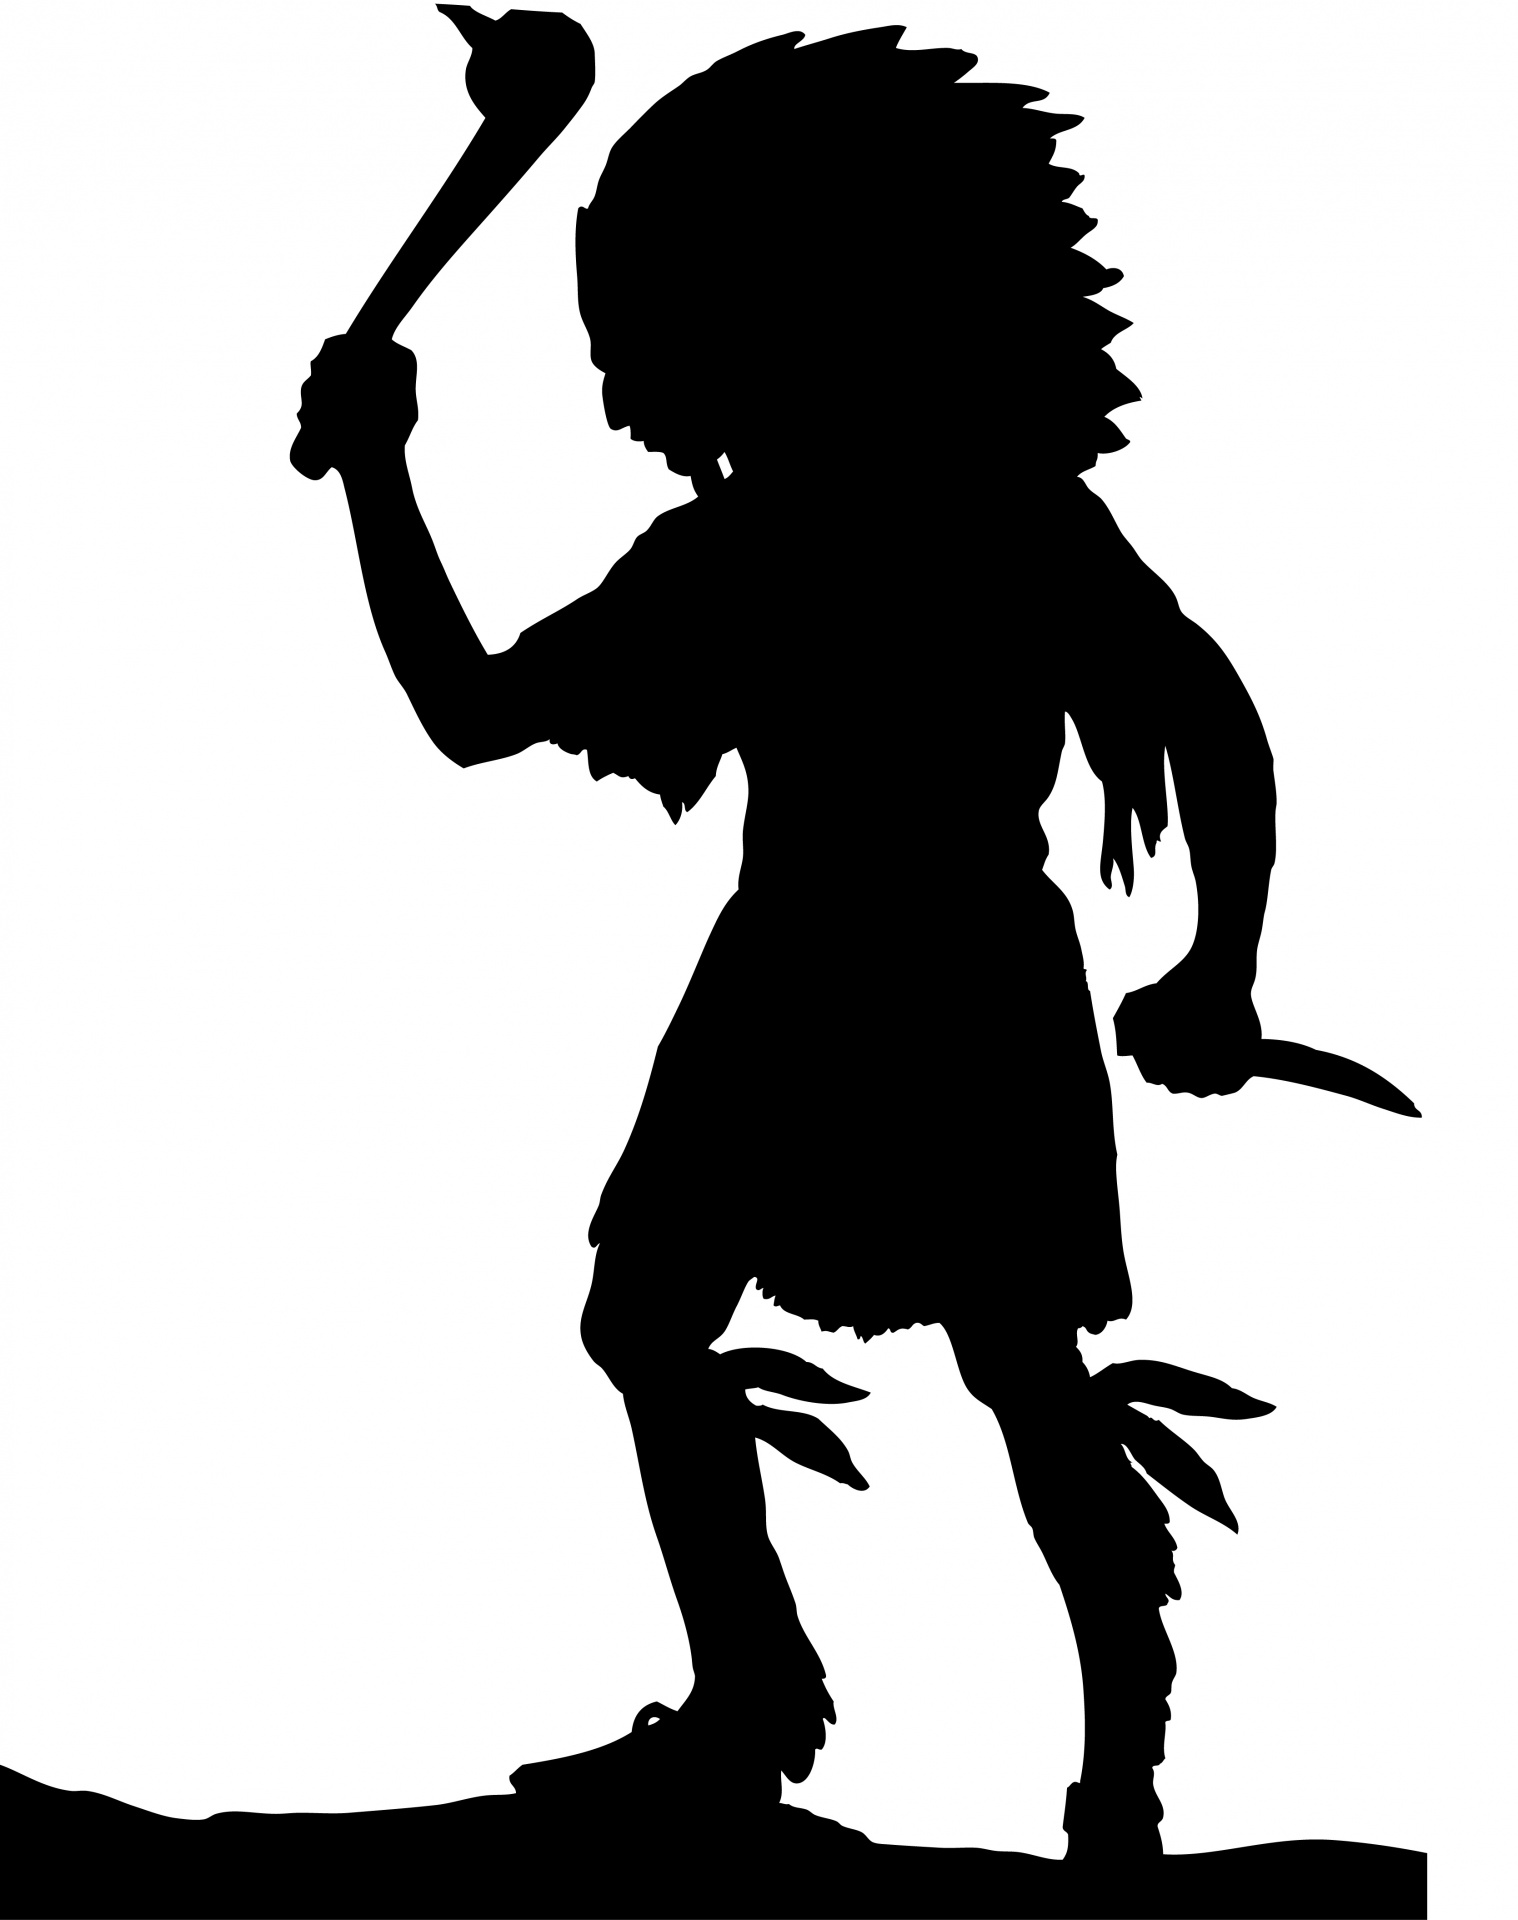 Native American Indian Silhouette.